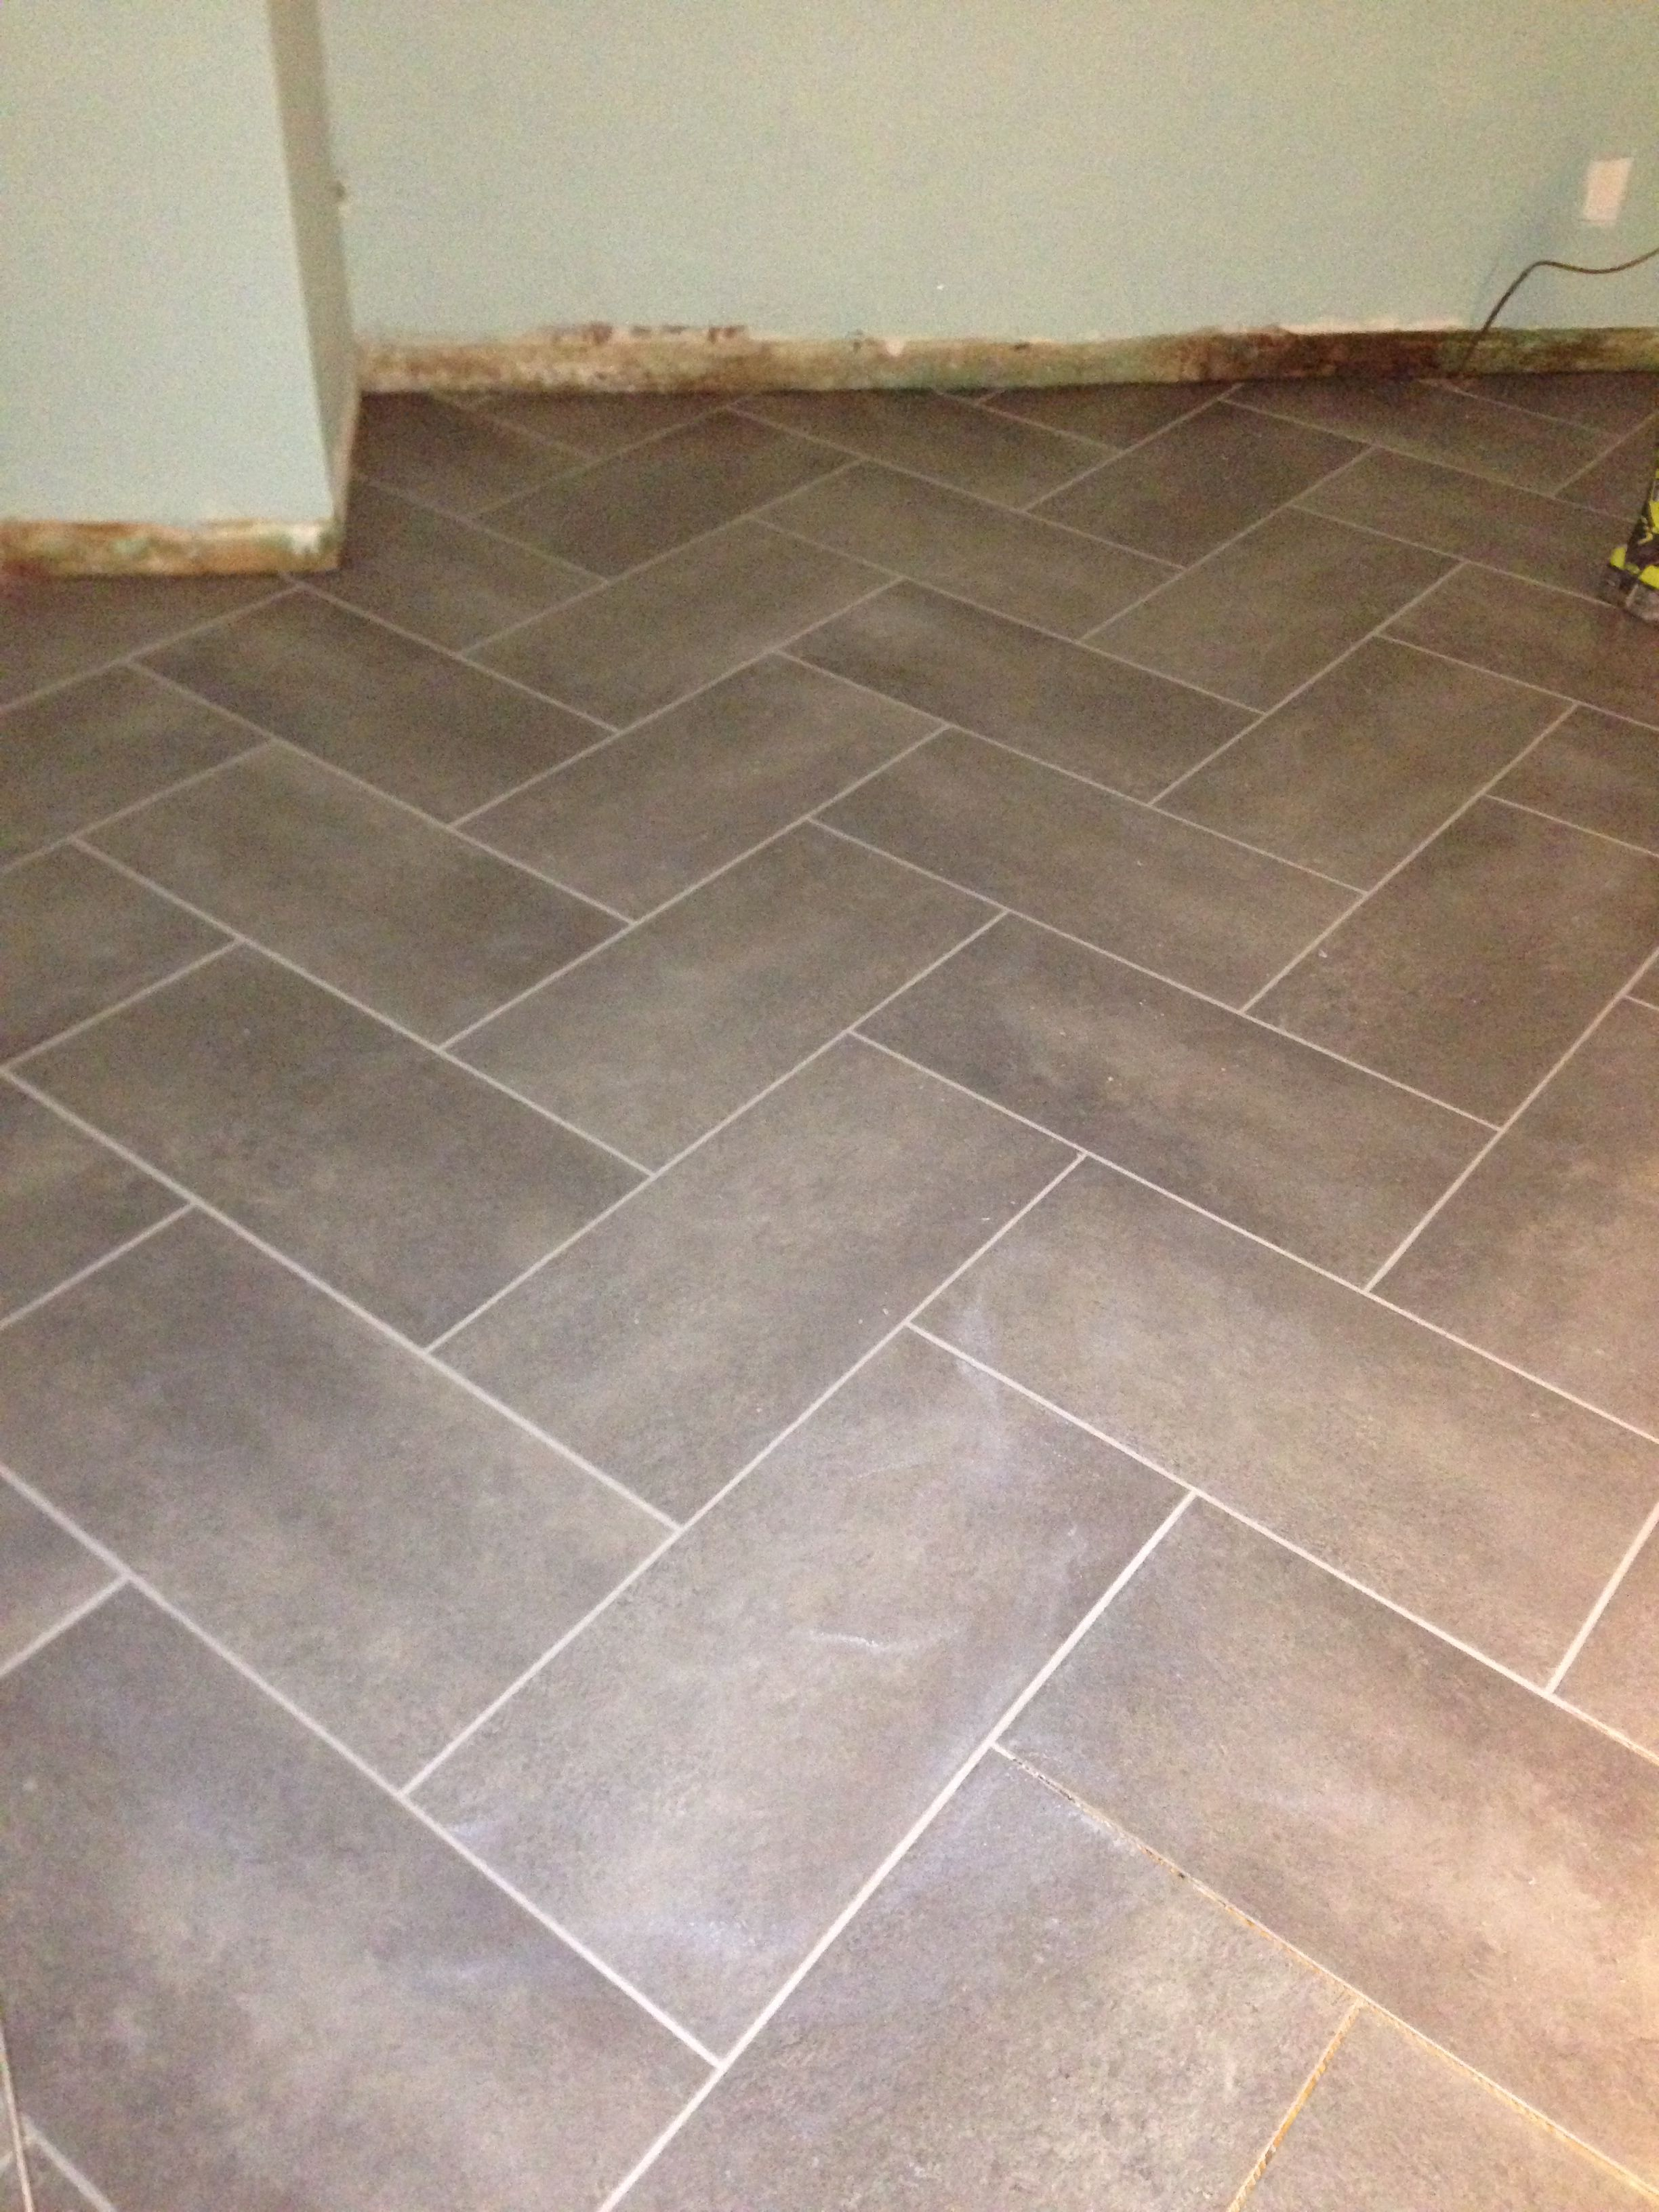 Trafficmaster ceramica 12x24 coastal gray herringbone pattern peel trafficmaster ceramica 12x24 coastal gray herringbone pattern peel and stick with grout dailygadgetfo Image collections